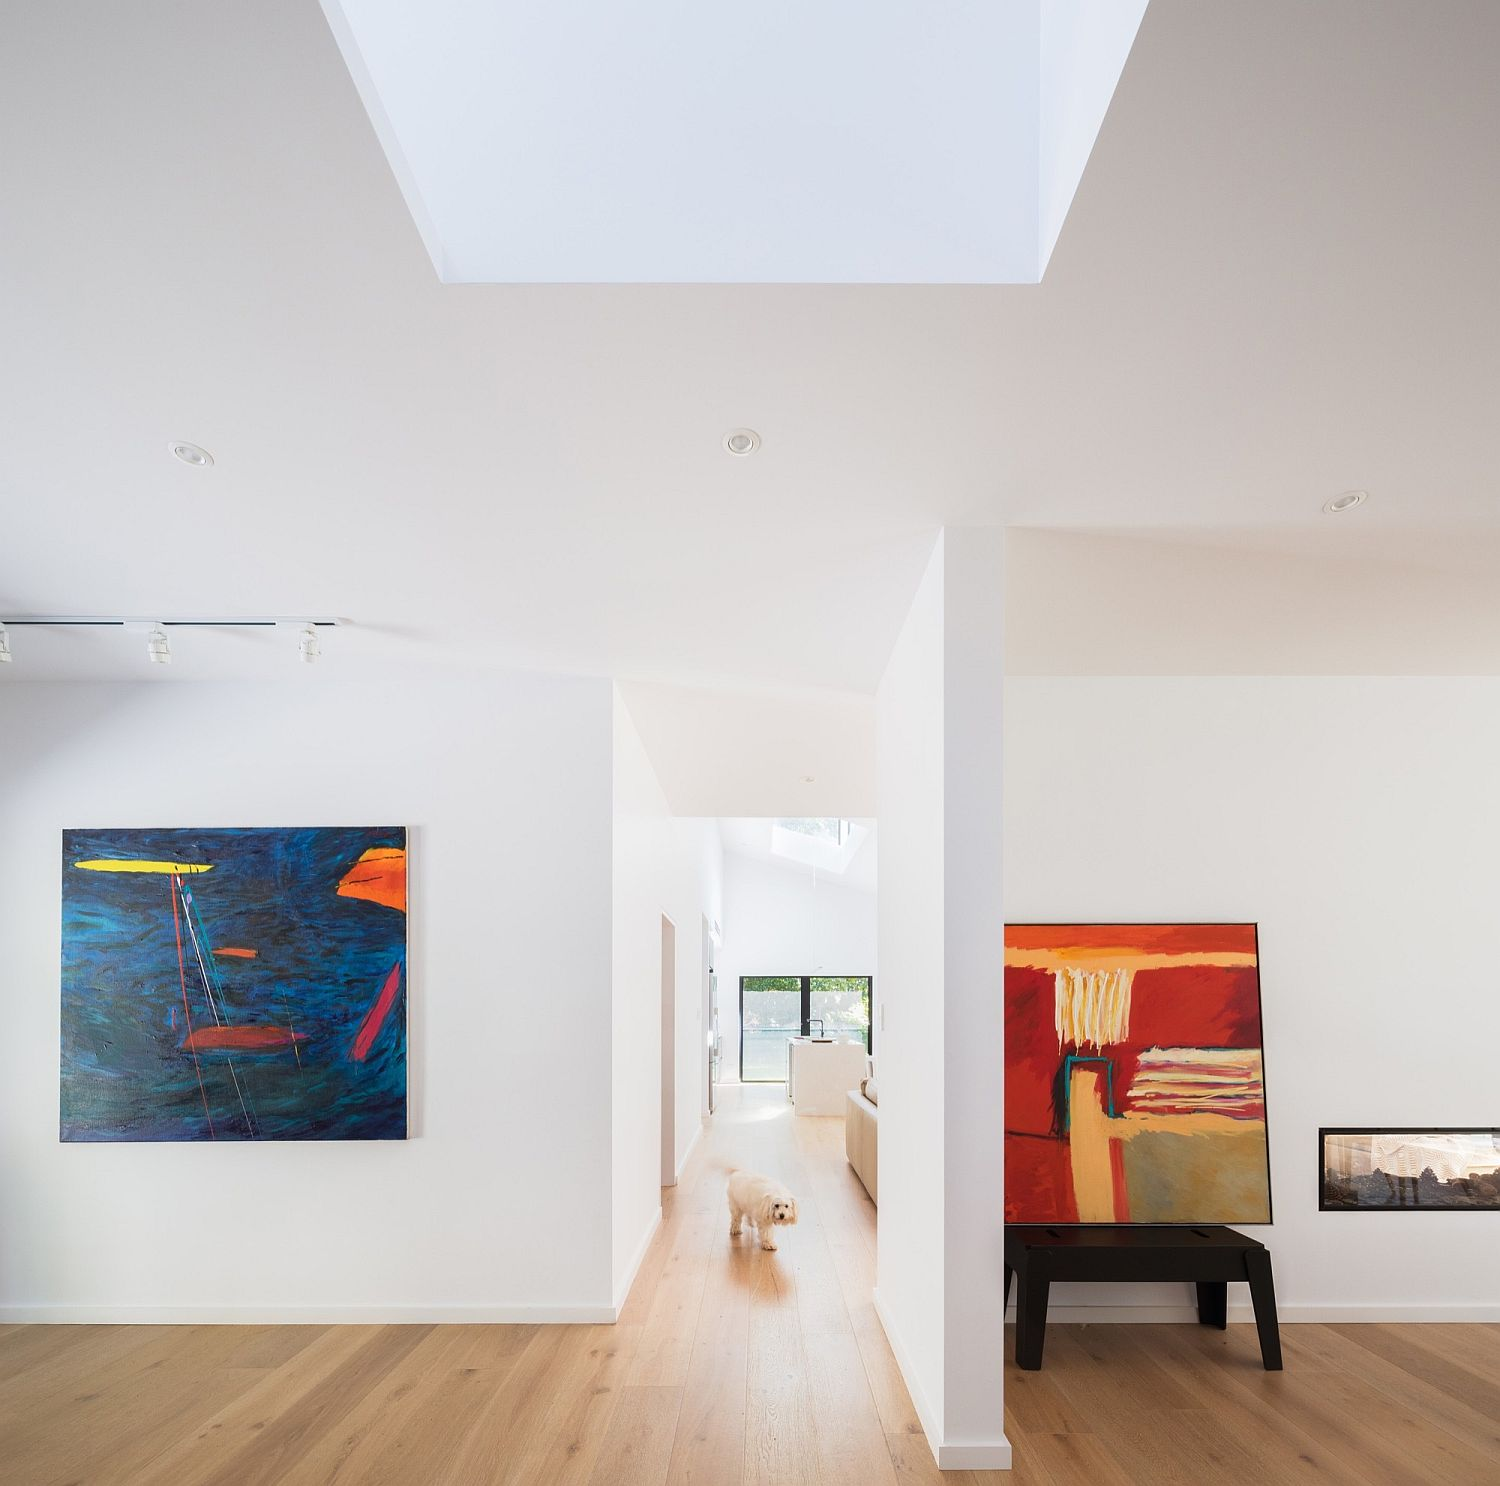 Modern artwork brings color to the contemporary interior